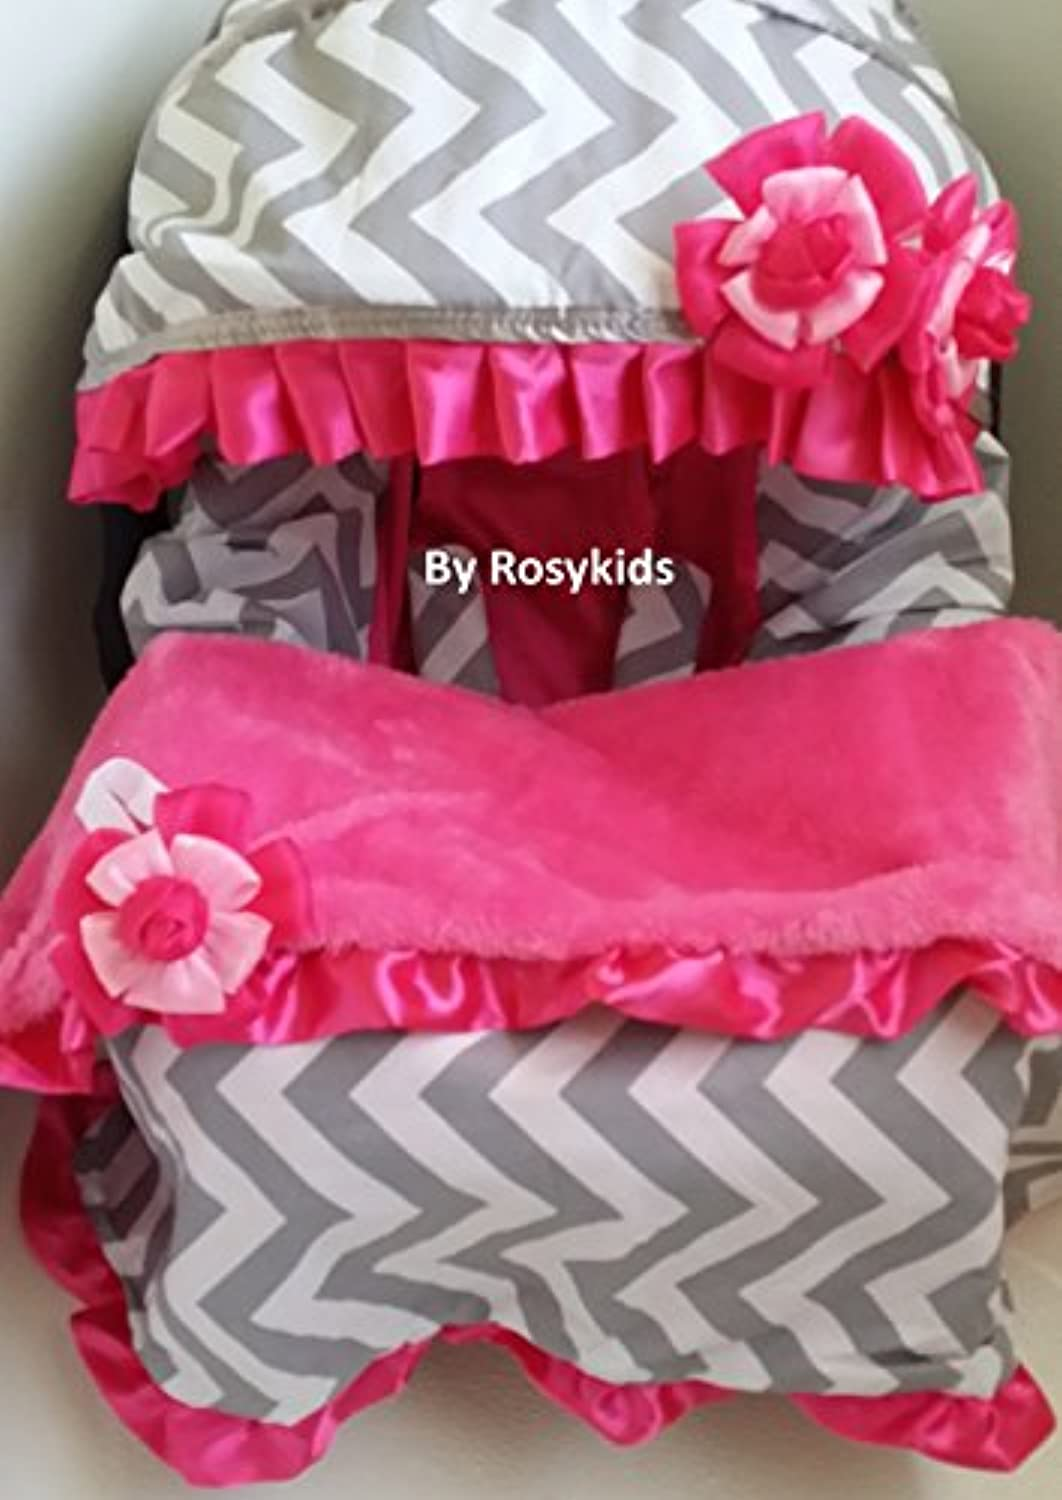 Infant Carseat Canopy Cover Blanket 4 Pc Whole Caboodle Baby Car Seat Cover Kit C030201 by Rosy Kids